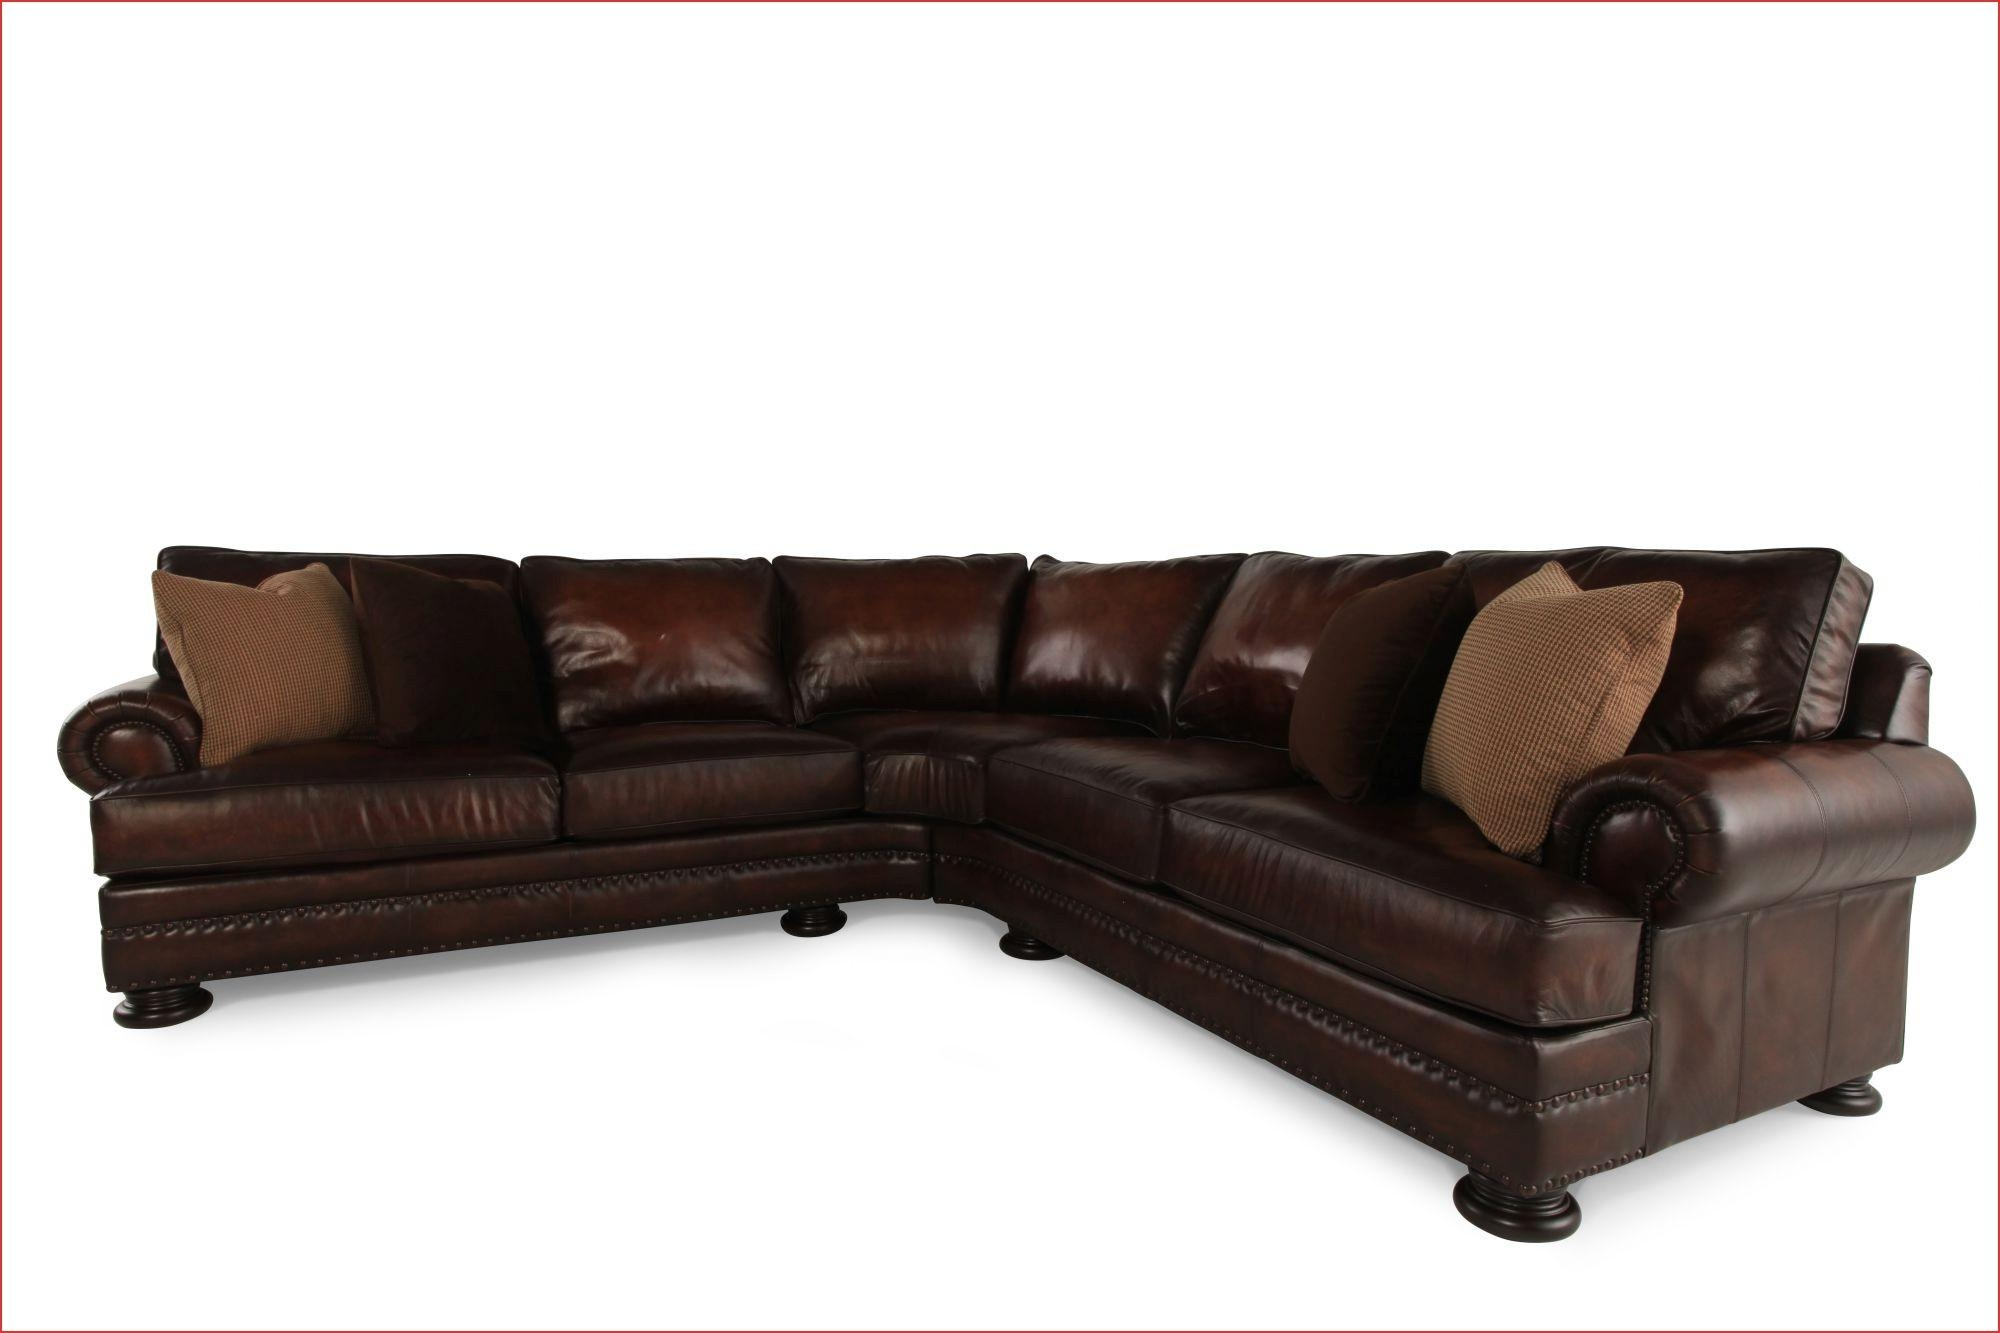 Foster Leather Sofa Elegant Foster Sofanorman Foster Designer Within Foster Leather Sofas (Image 12 of 20)